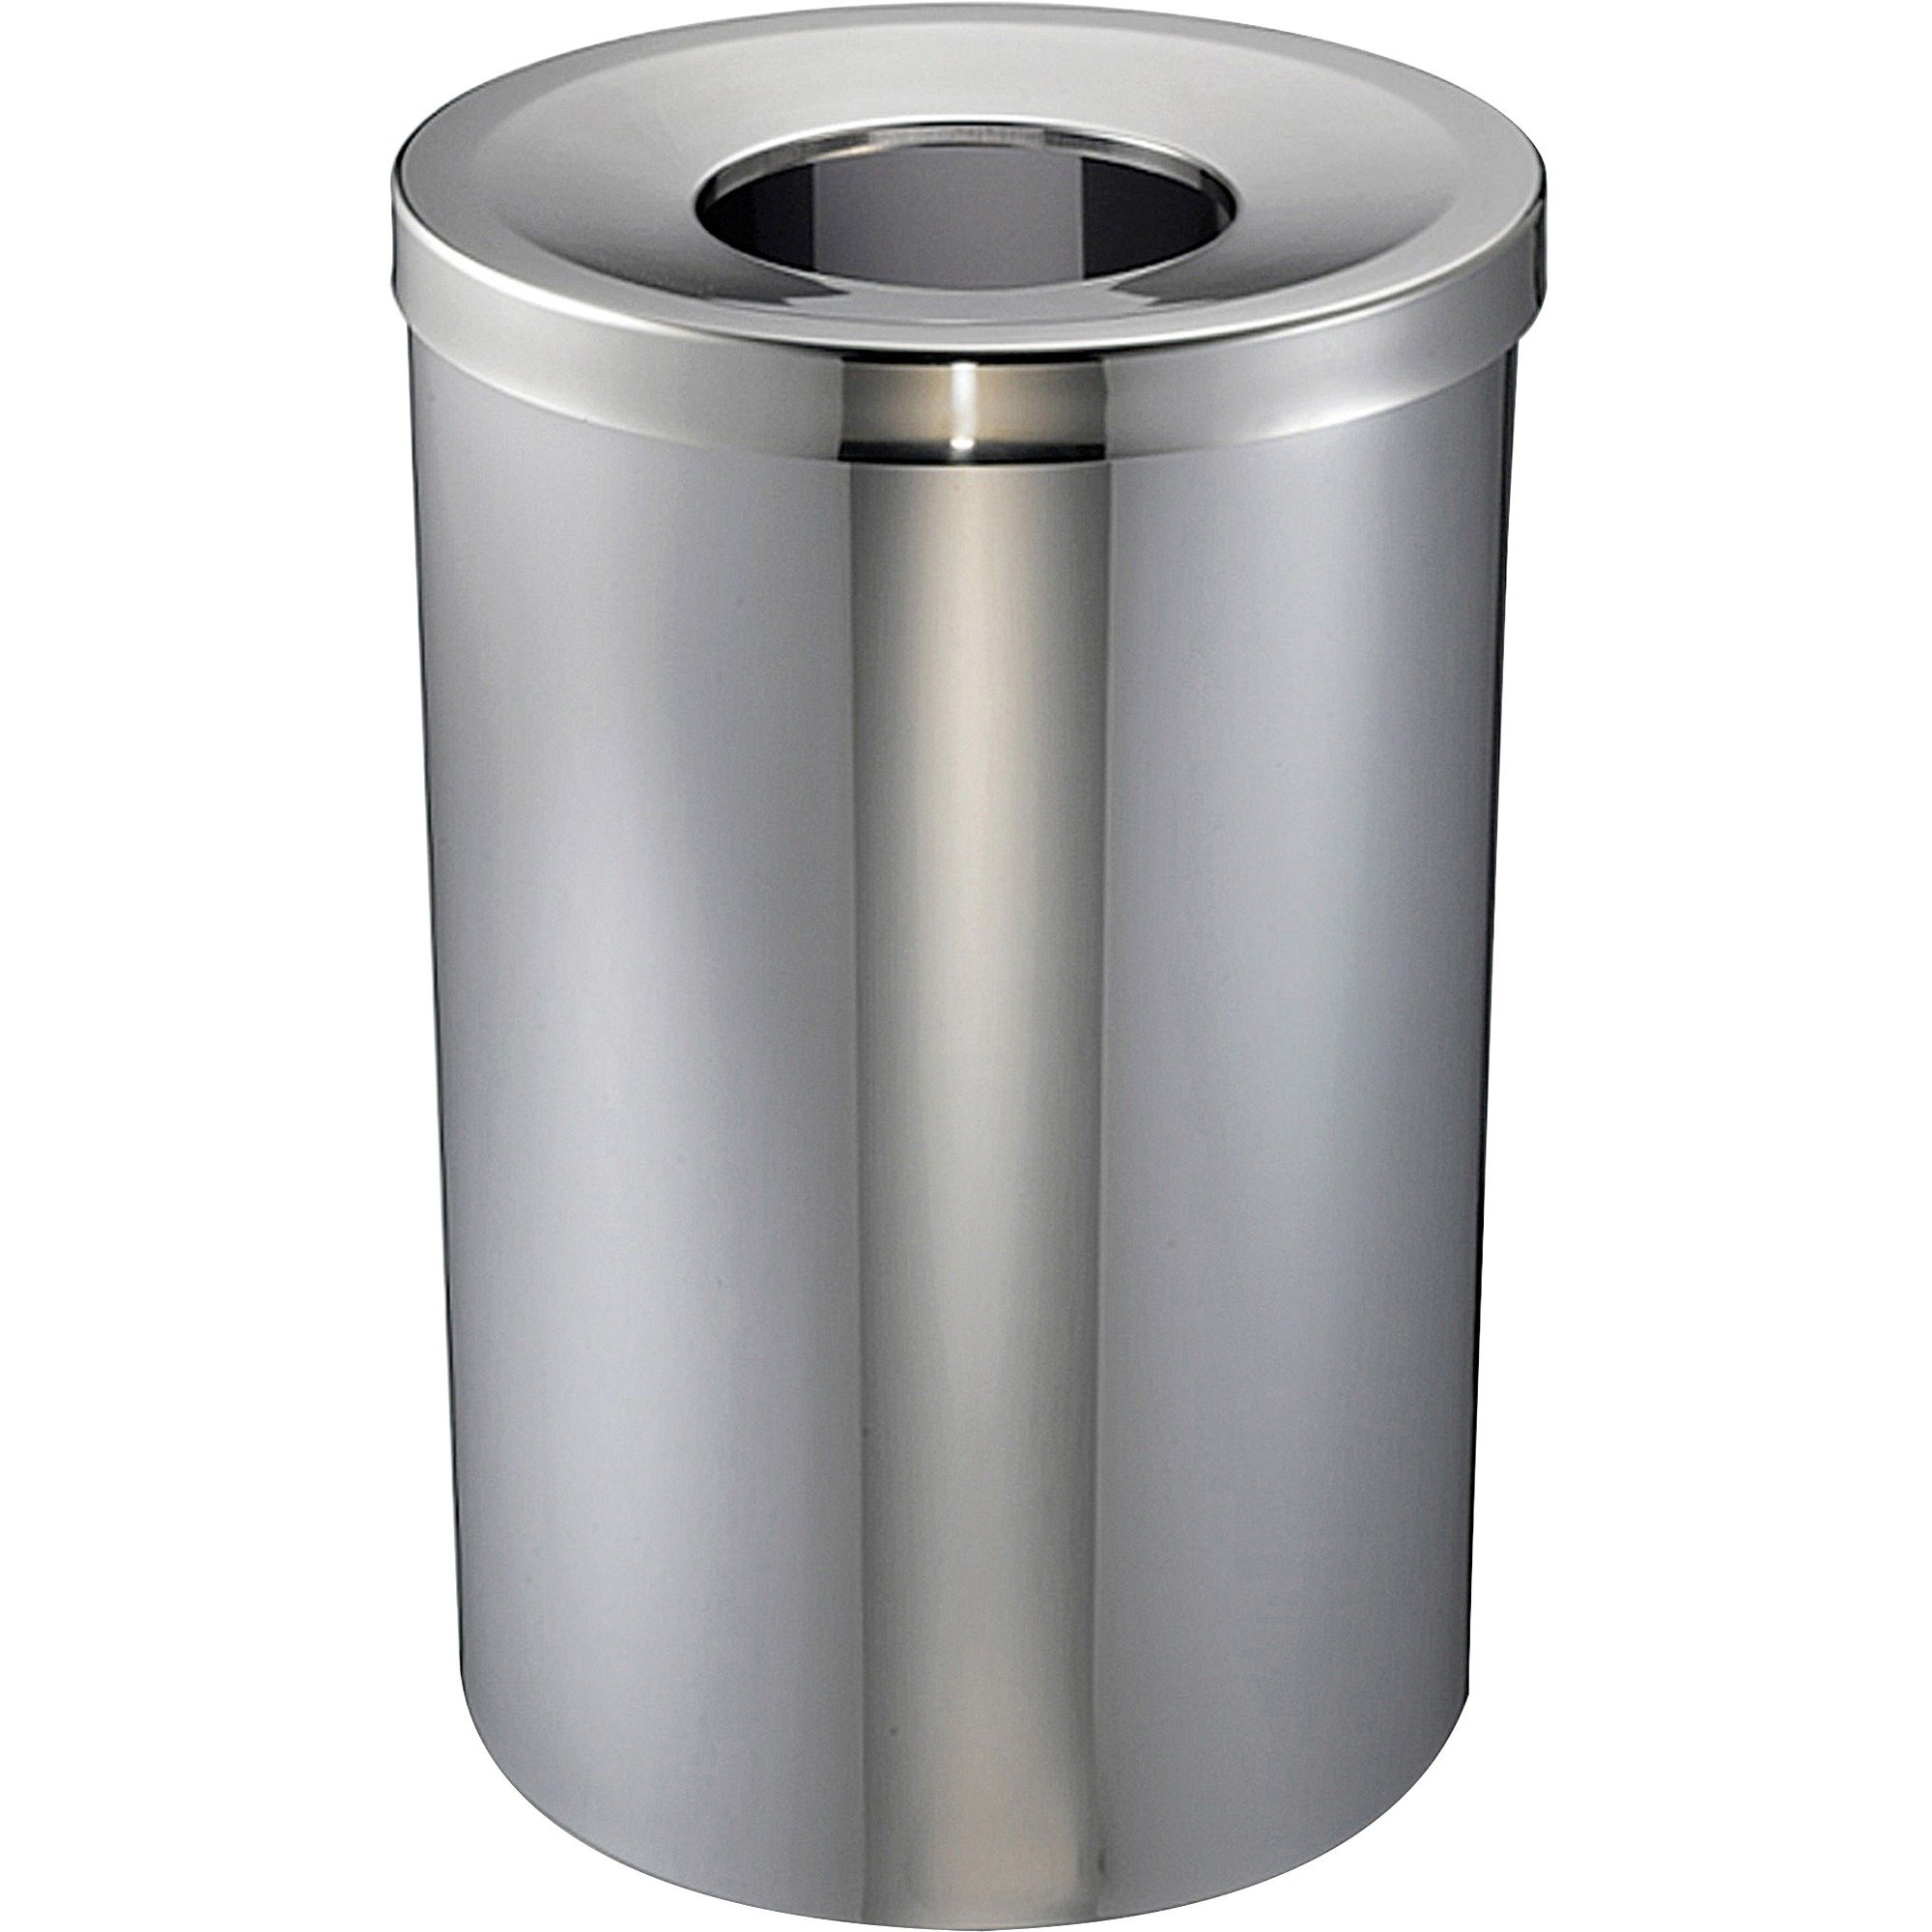 Genuine Joe Open Mouth Waste Receptacle - 30 Gal Capacity - Stainless Steel - Silver (GJO58895)